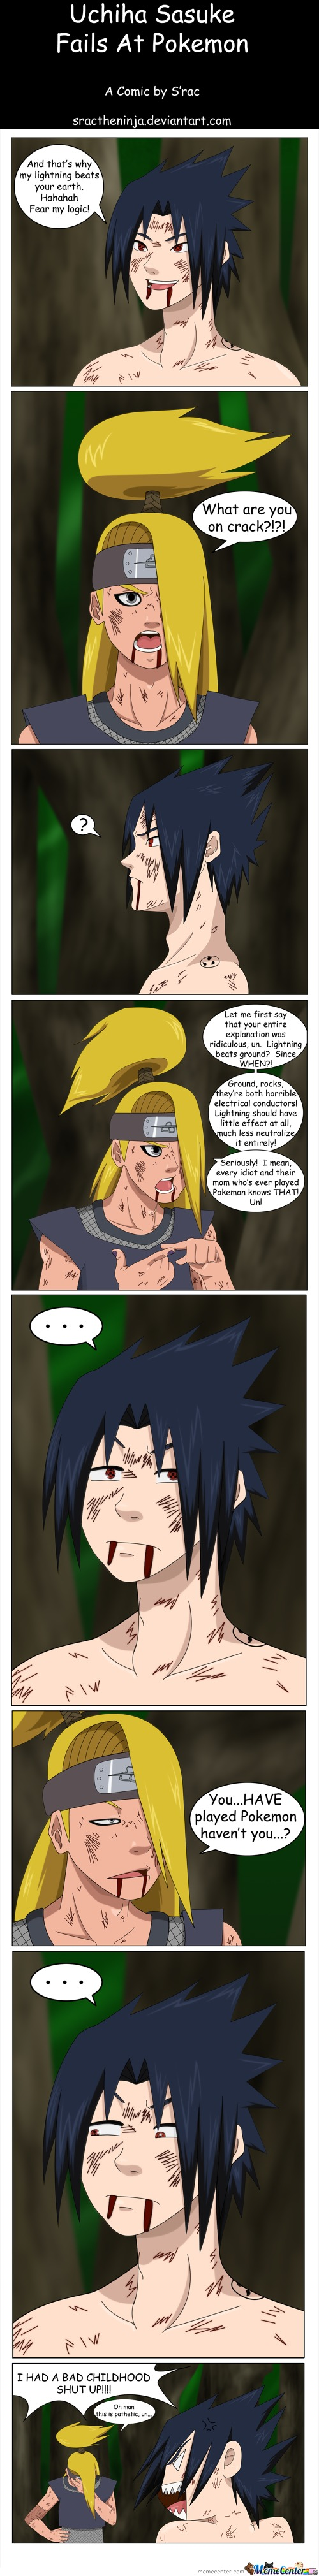 Sasuke Fails At Pokemon- By Sractheninja